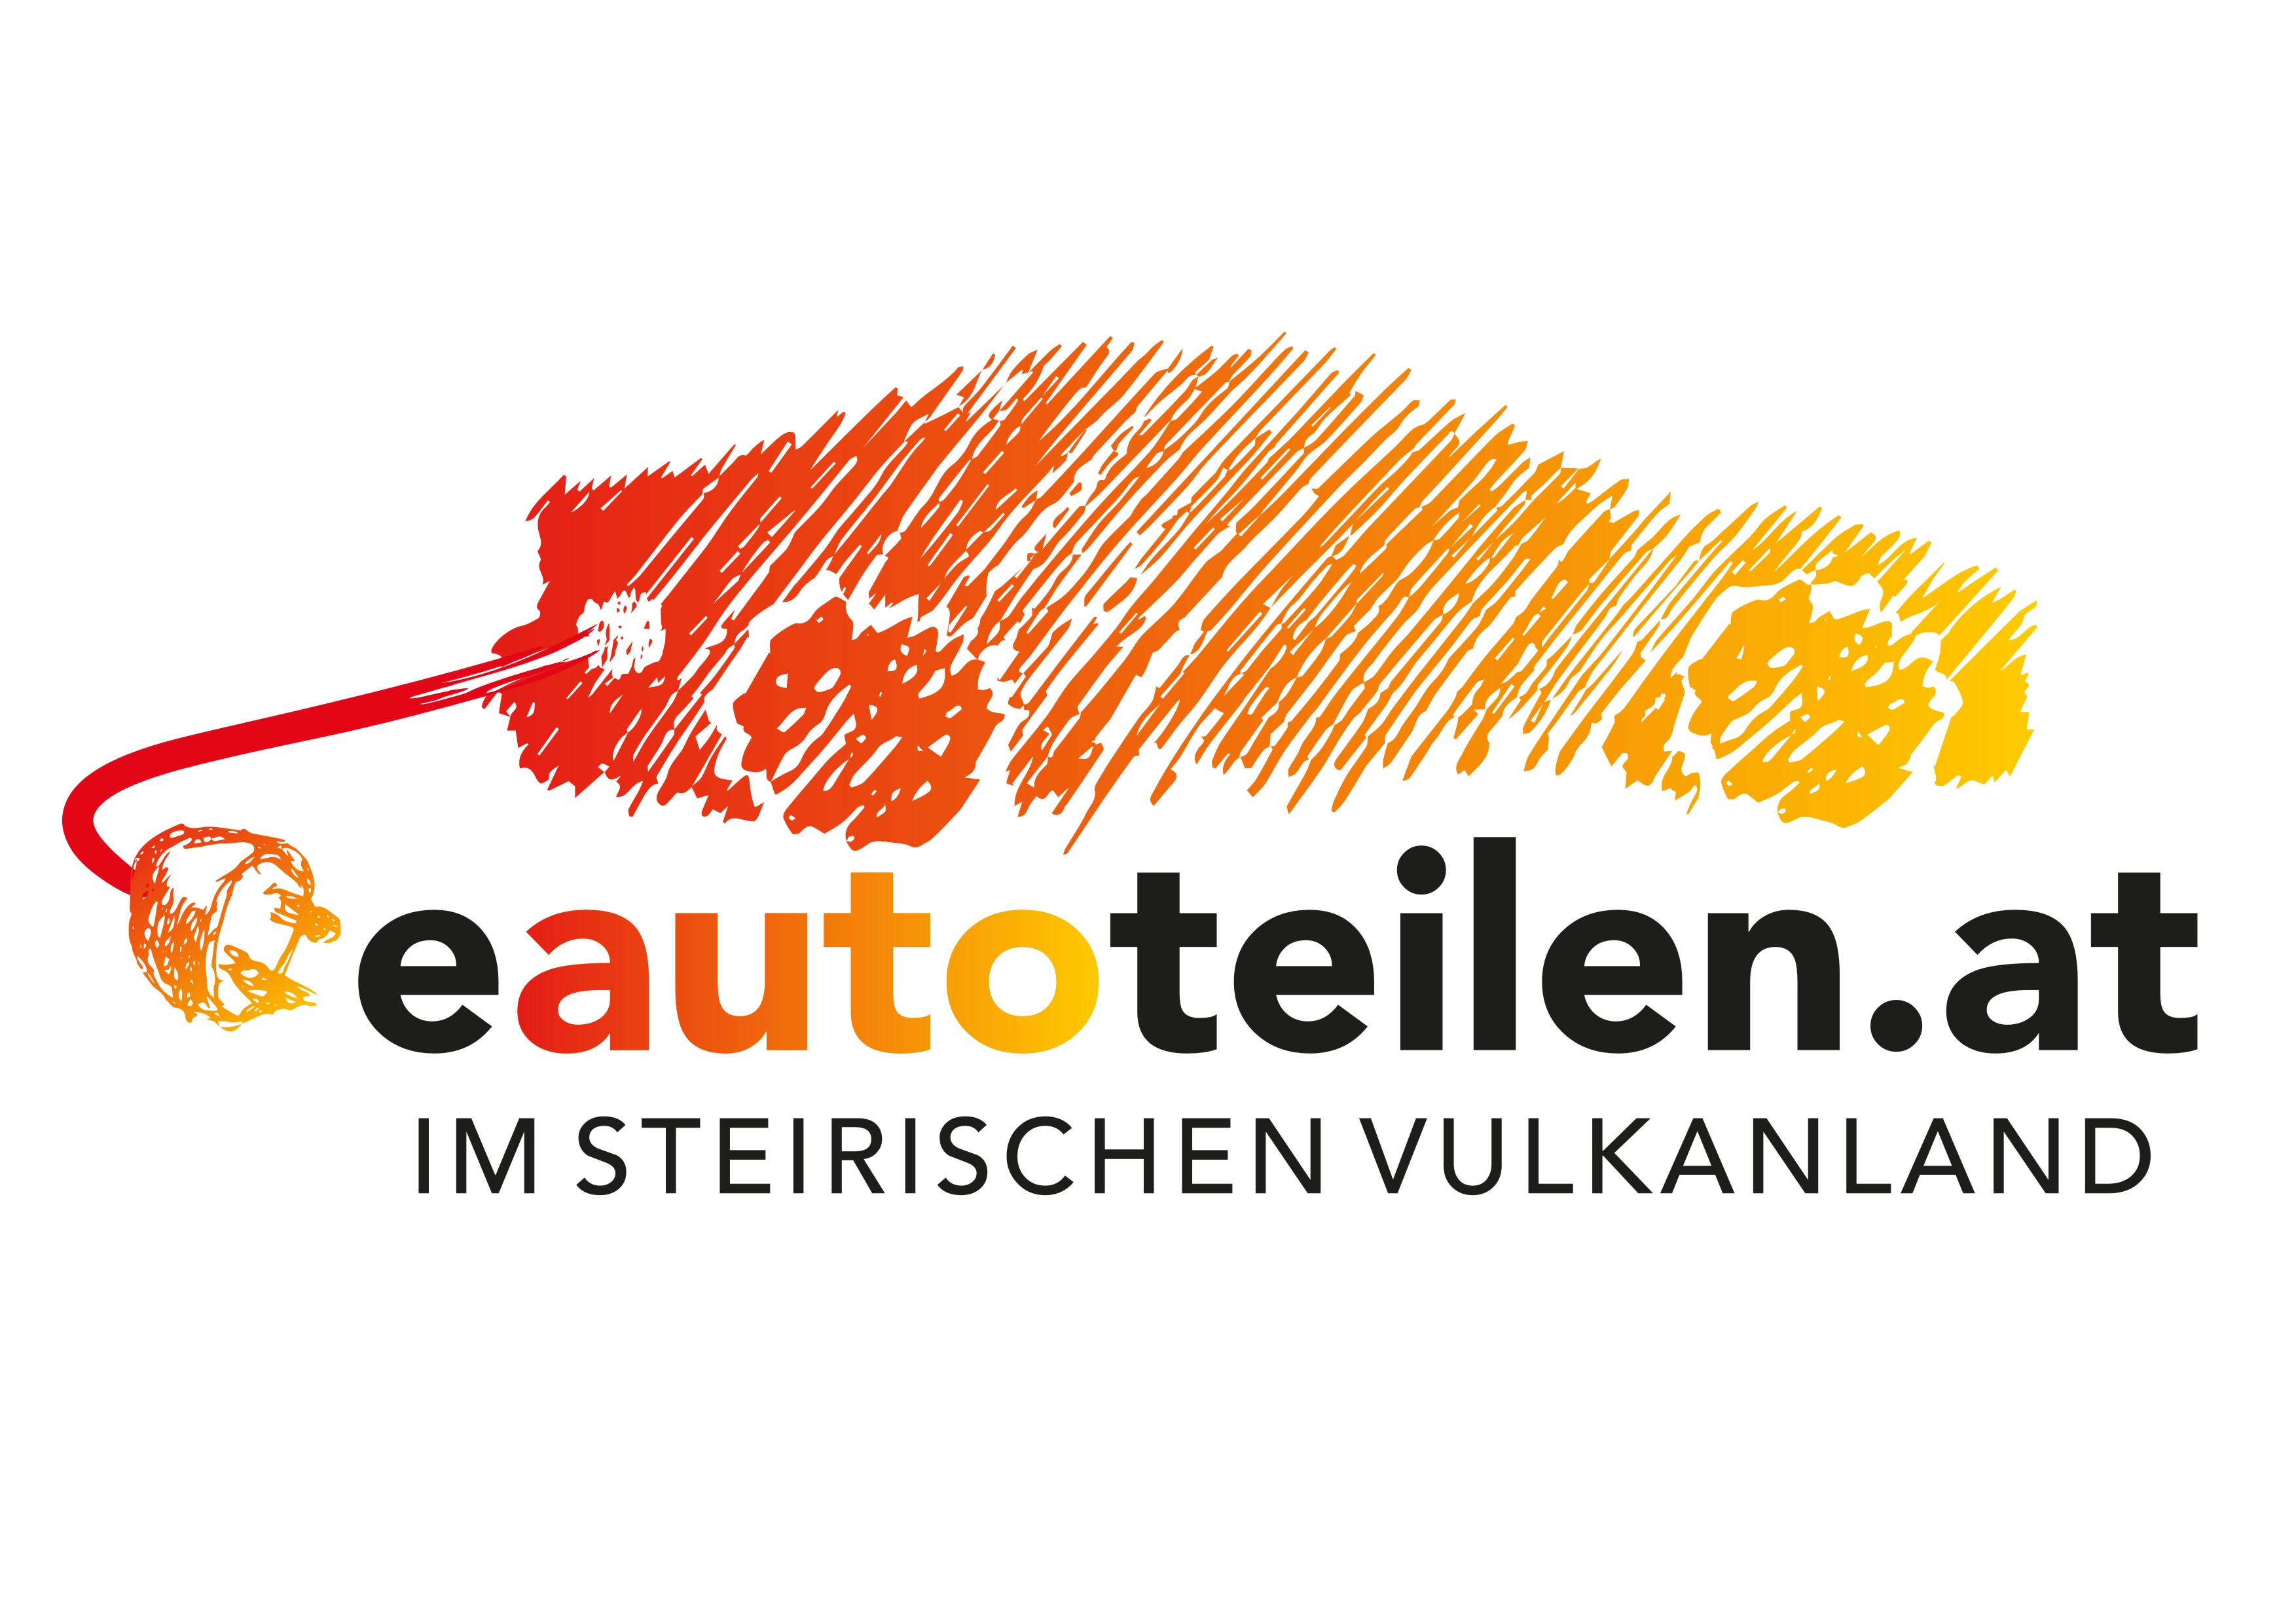 e-autoteilen.at-Marke